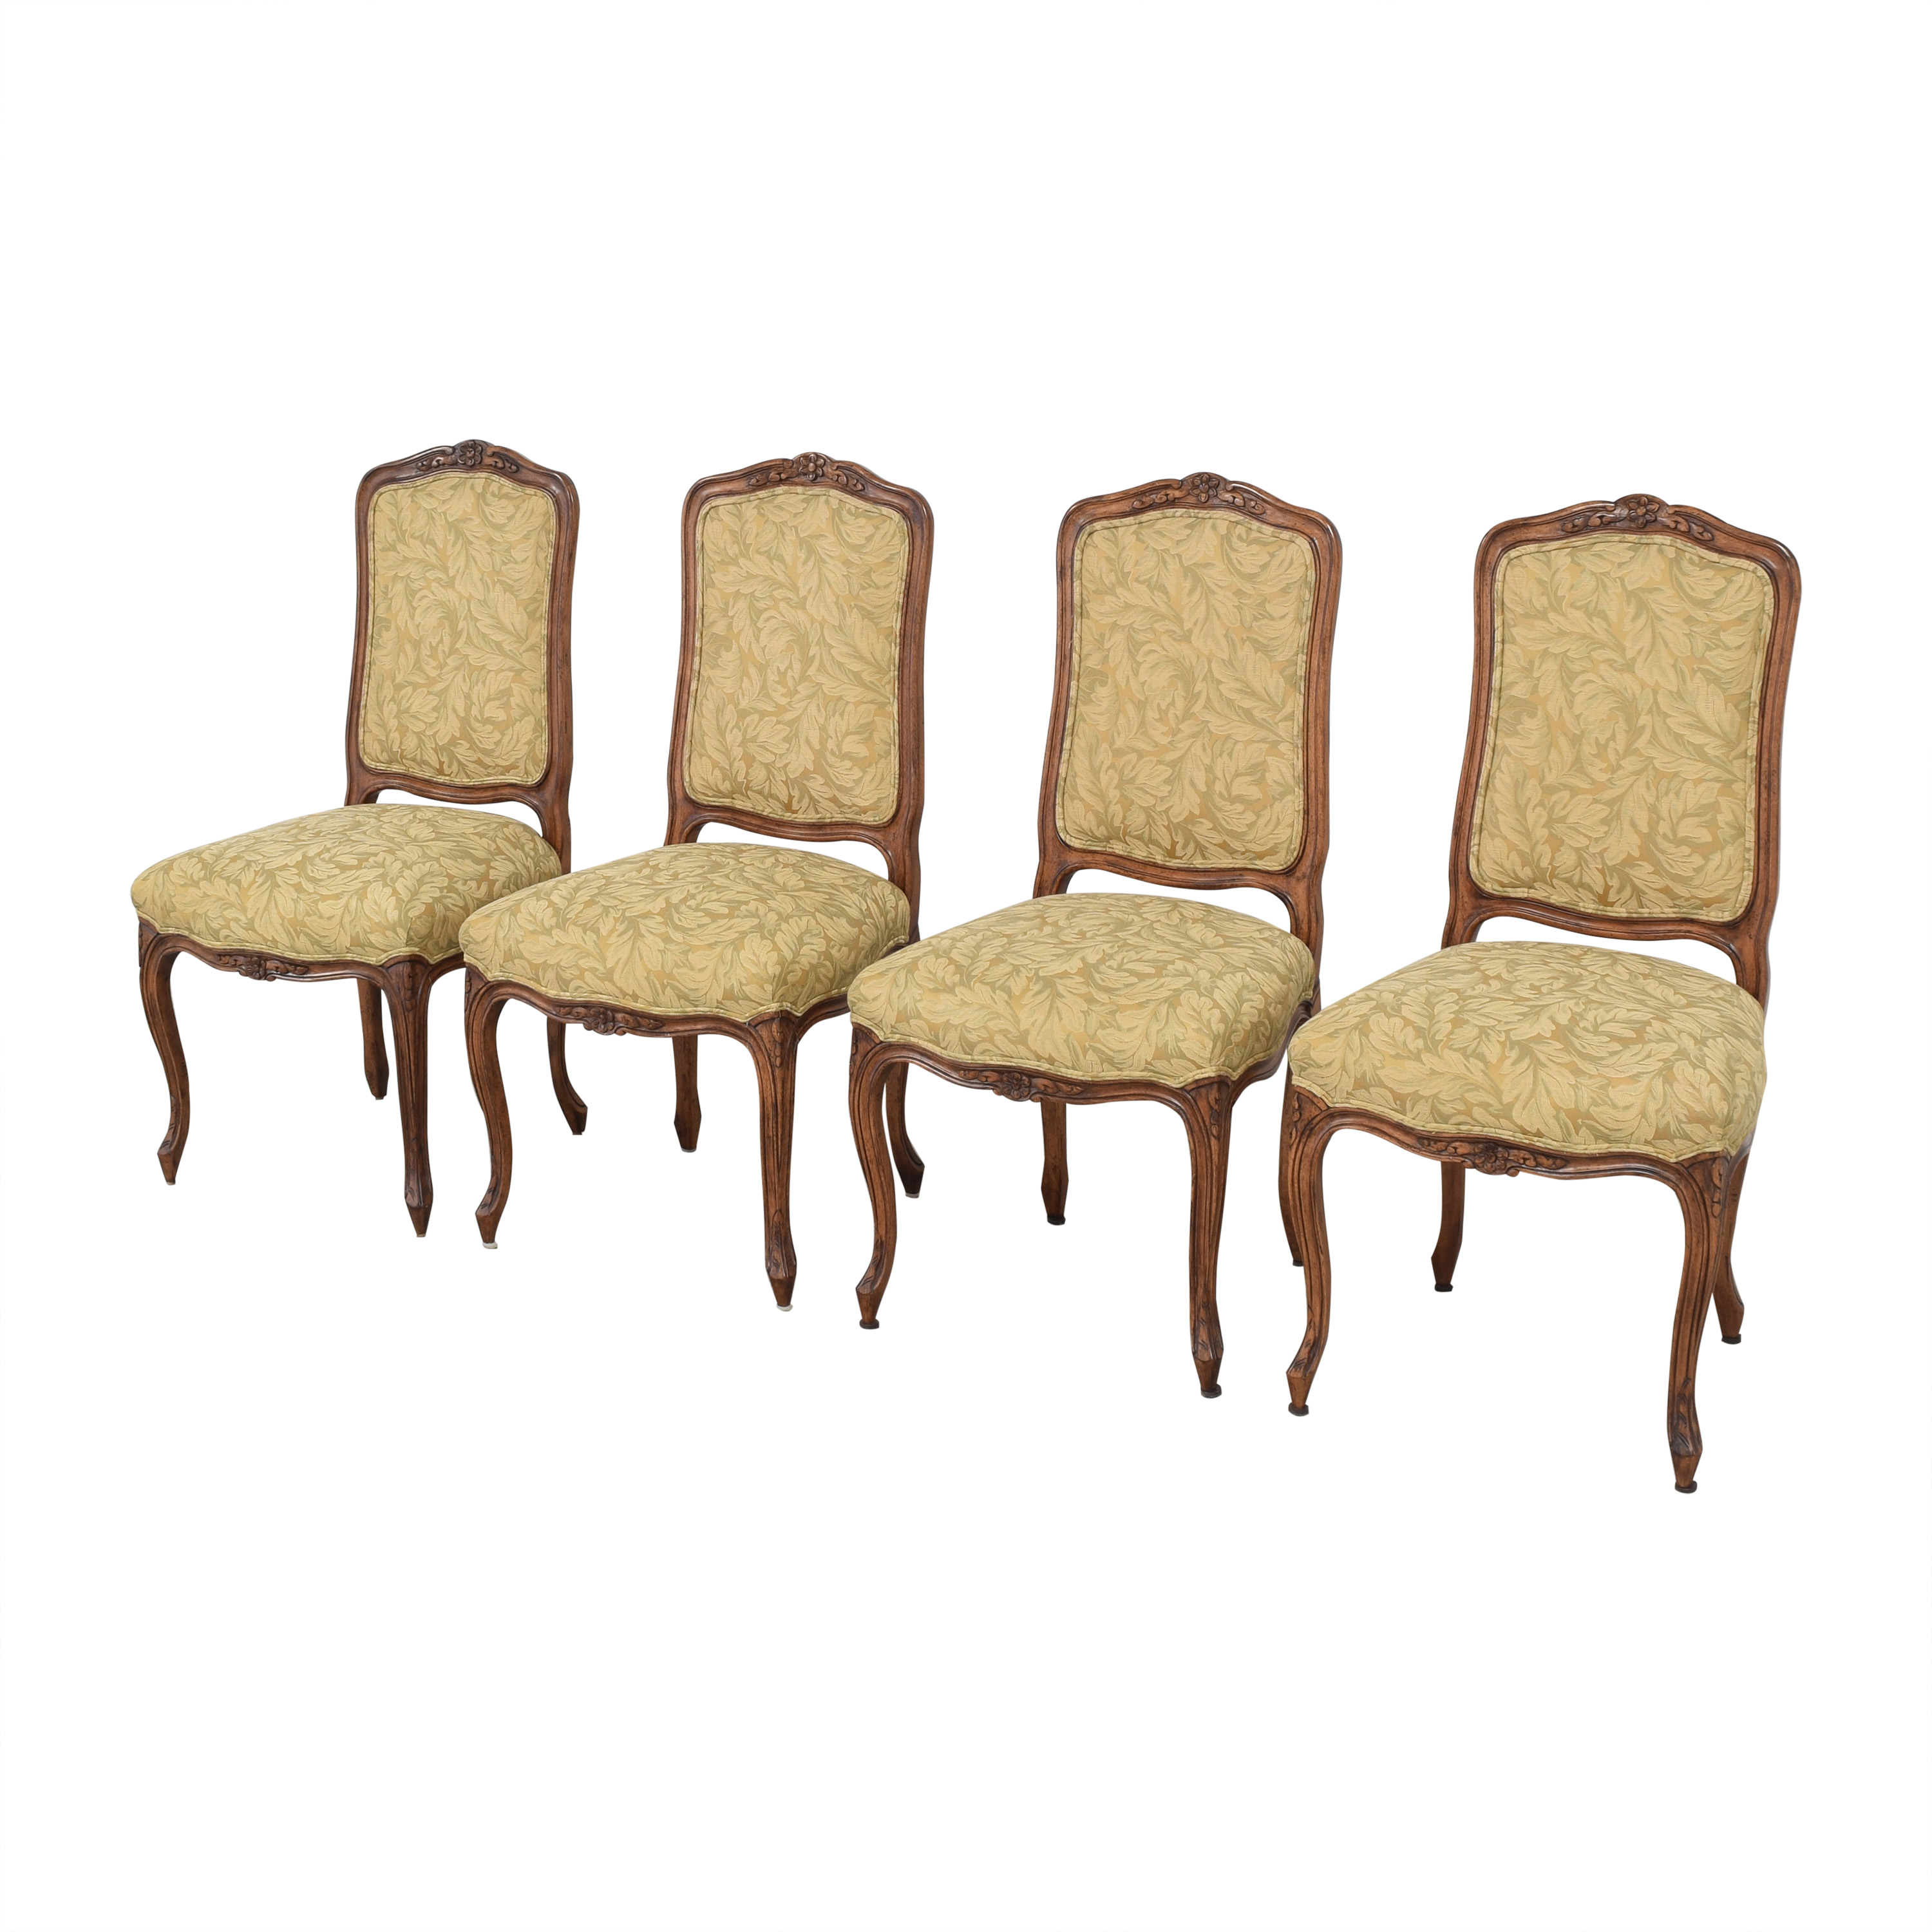 Fremarc Designs Fremarc Designs Carved Upholstered Dining Chairs discount